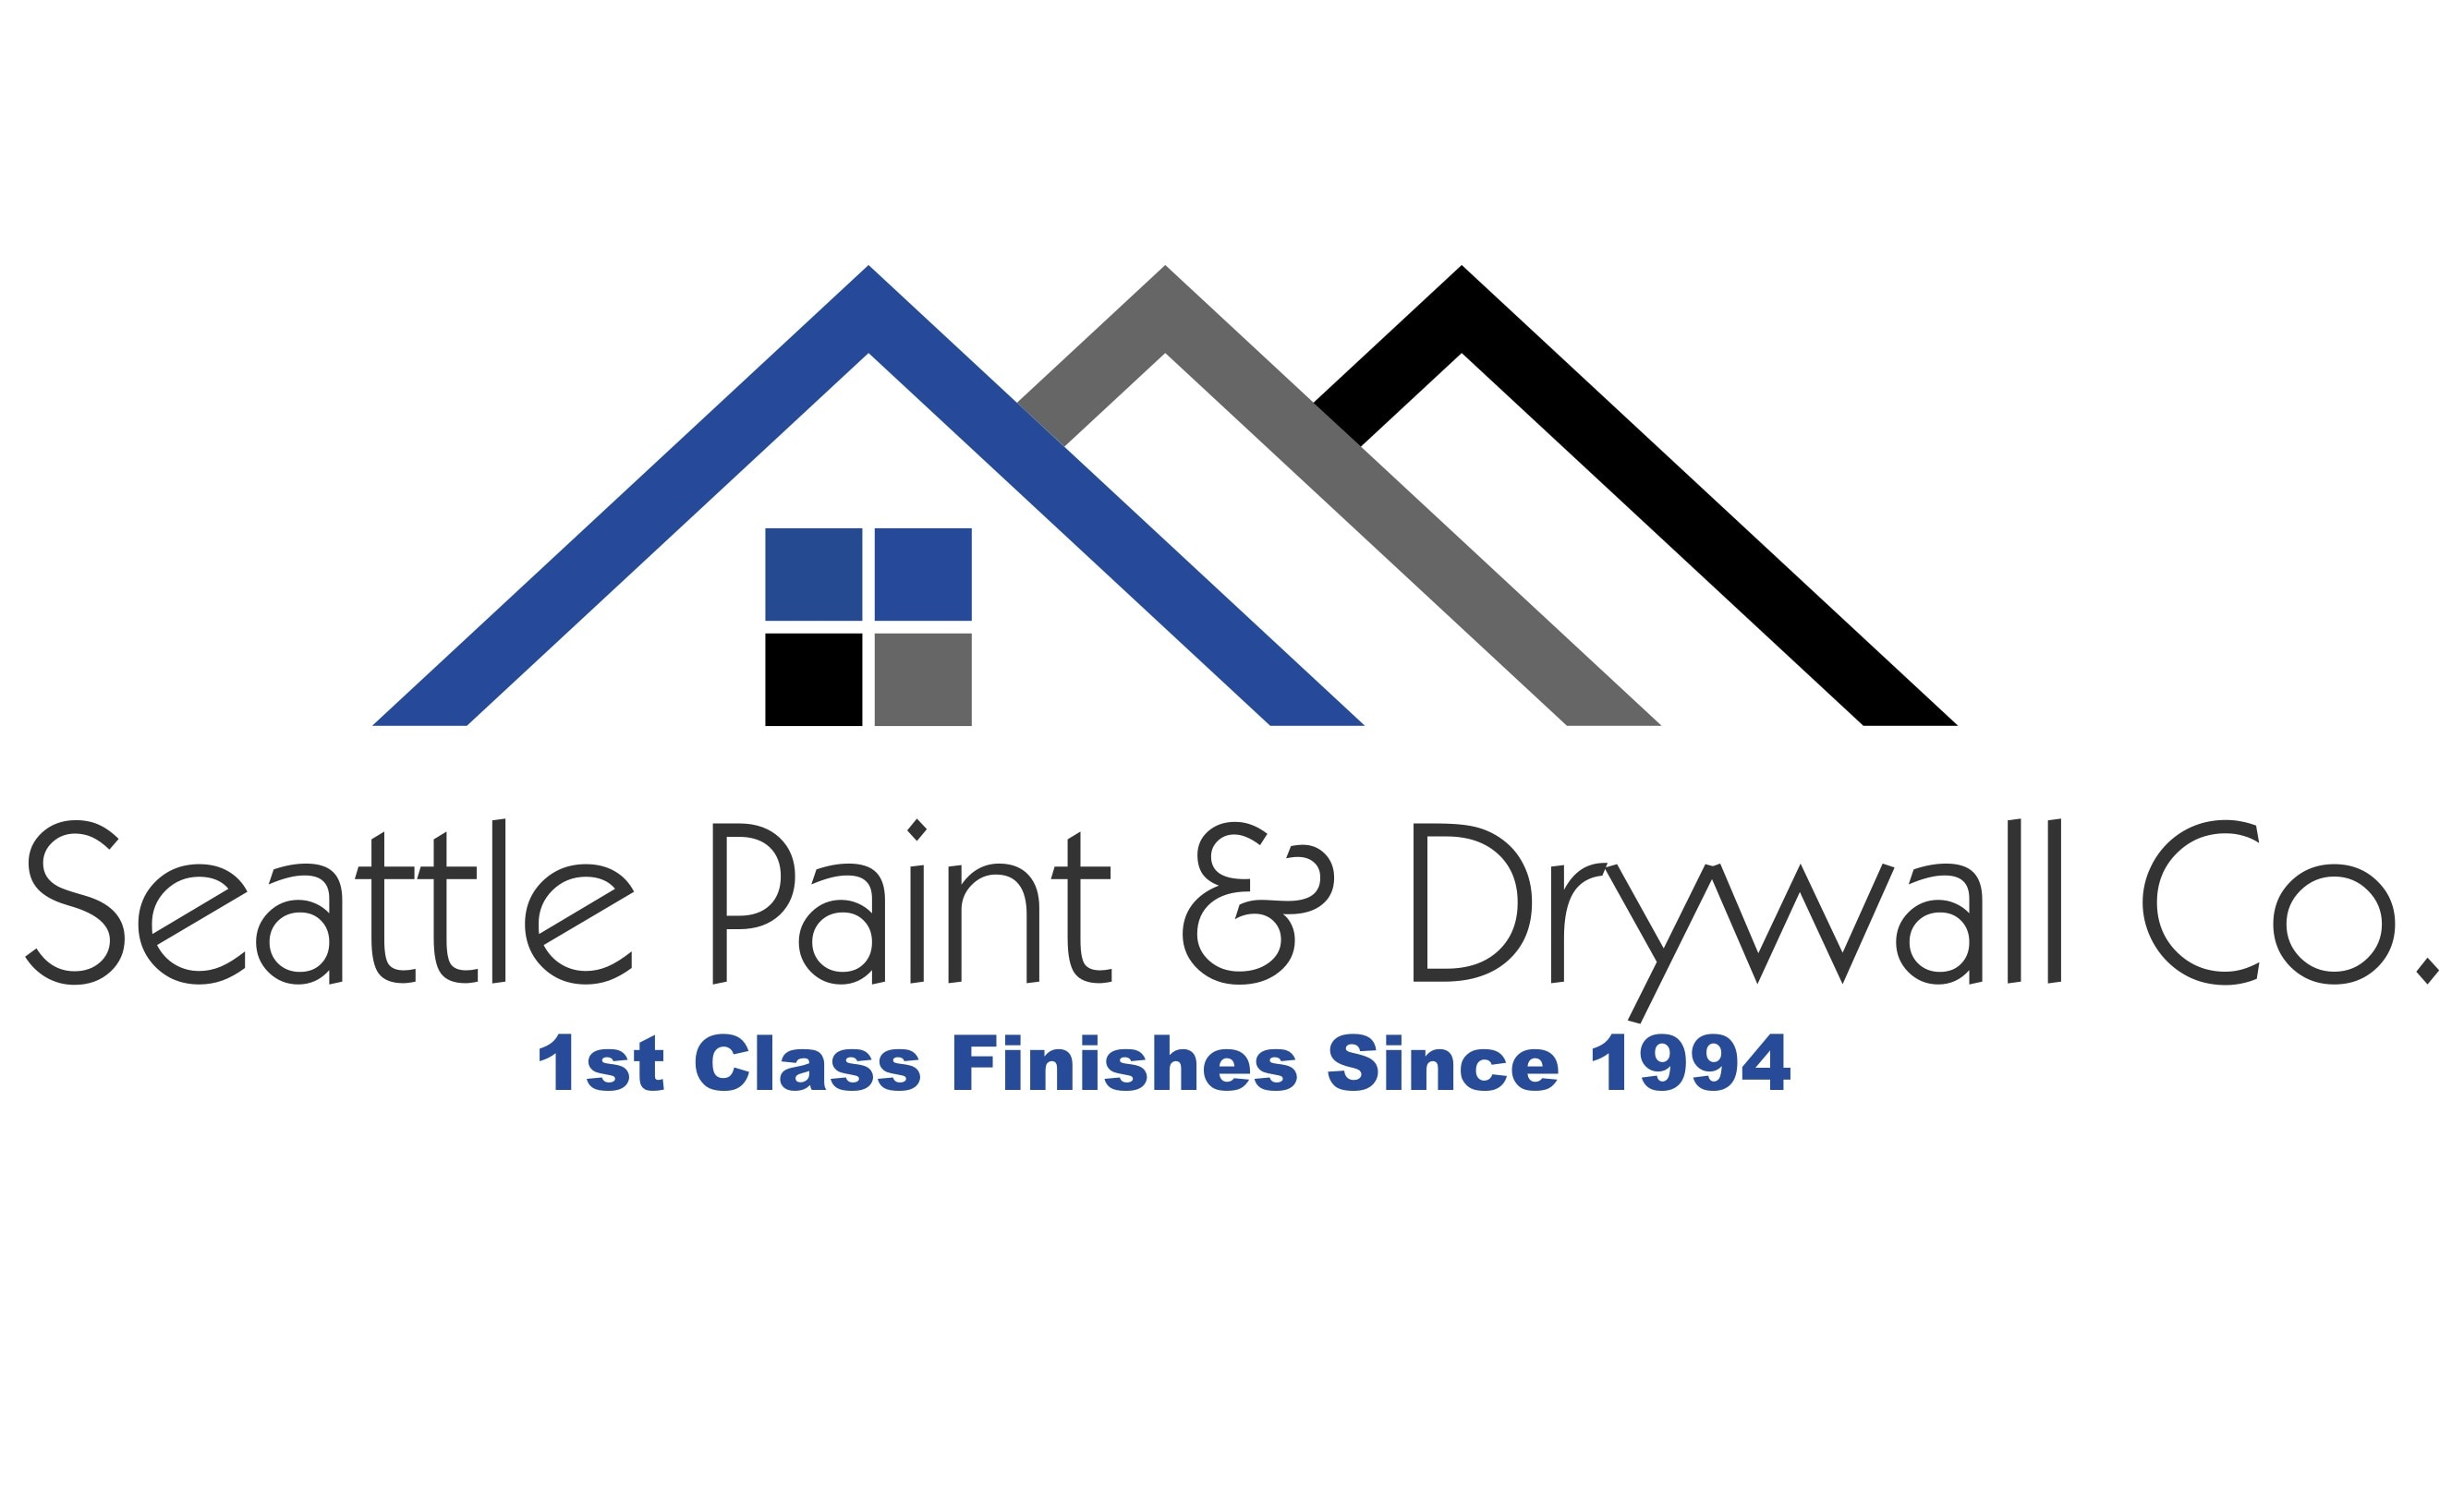 Seattle Paint and Drywall Co logo